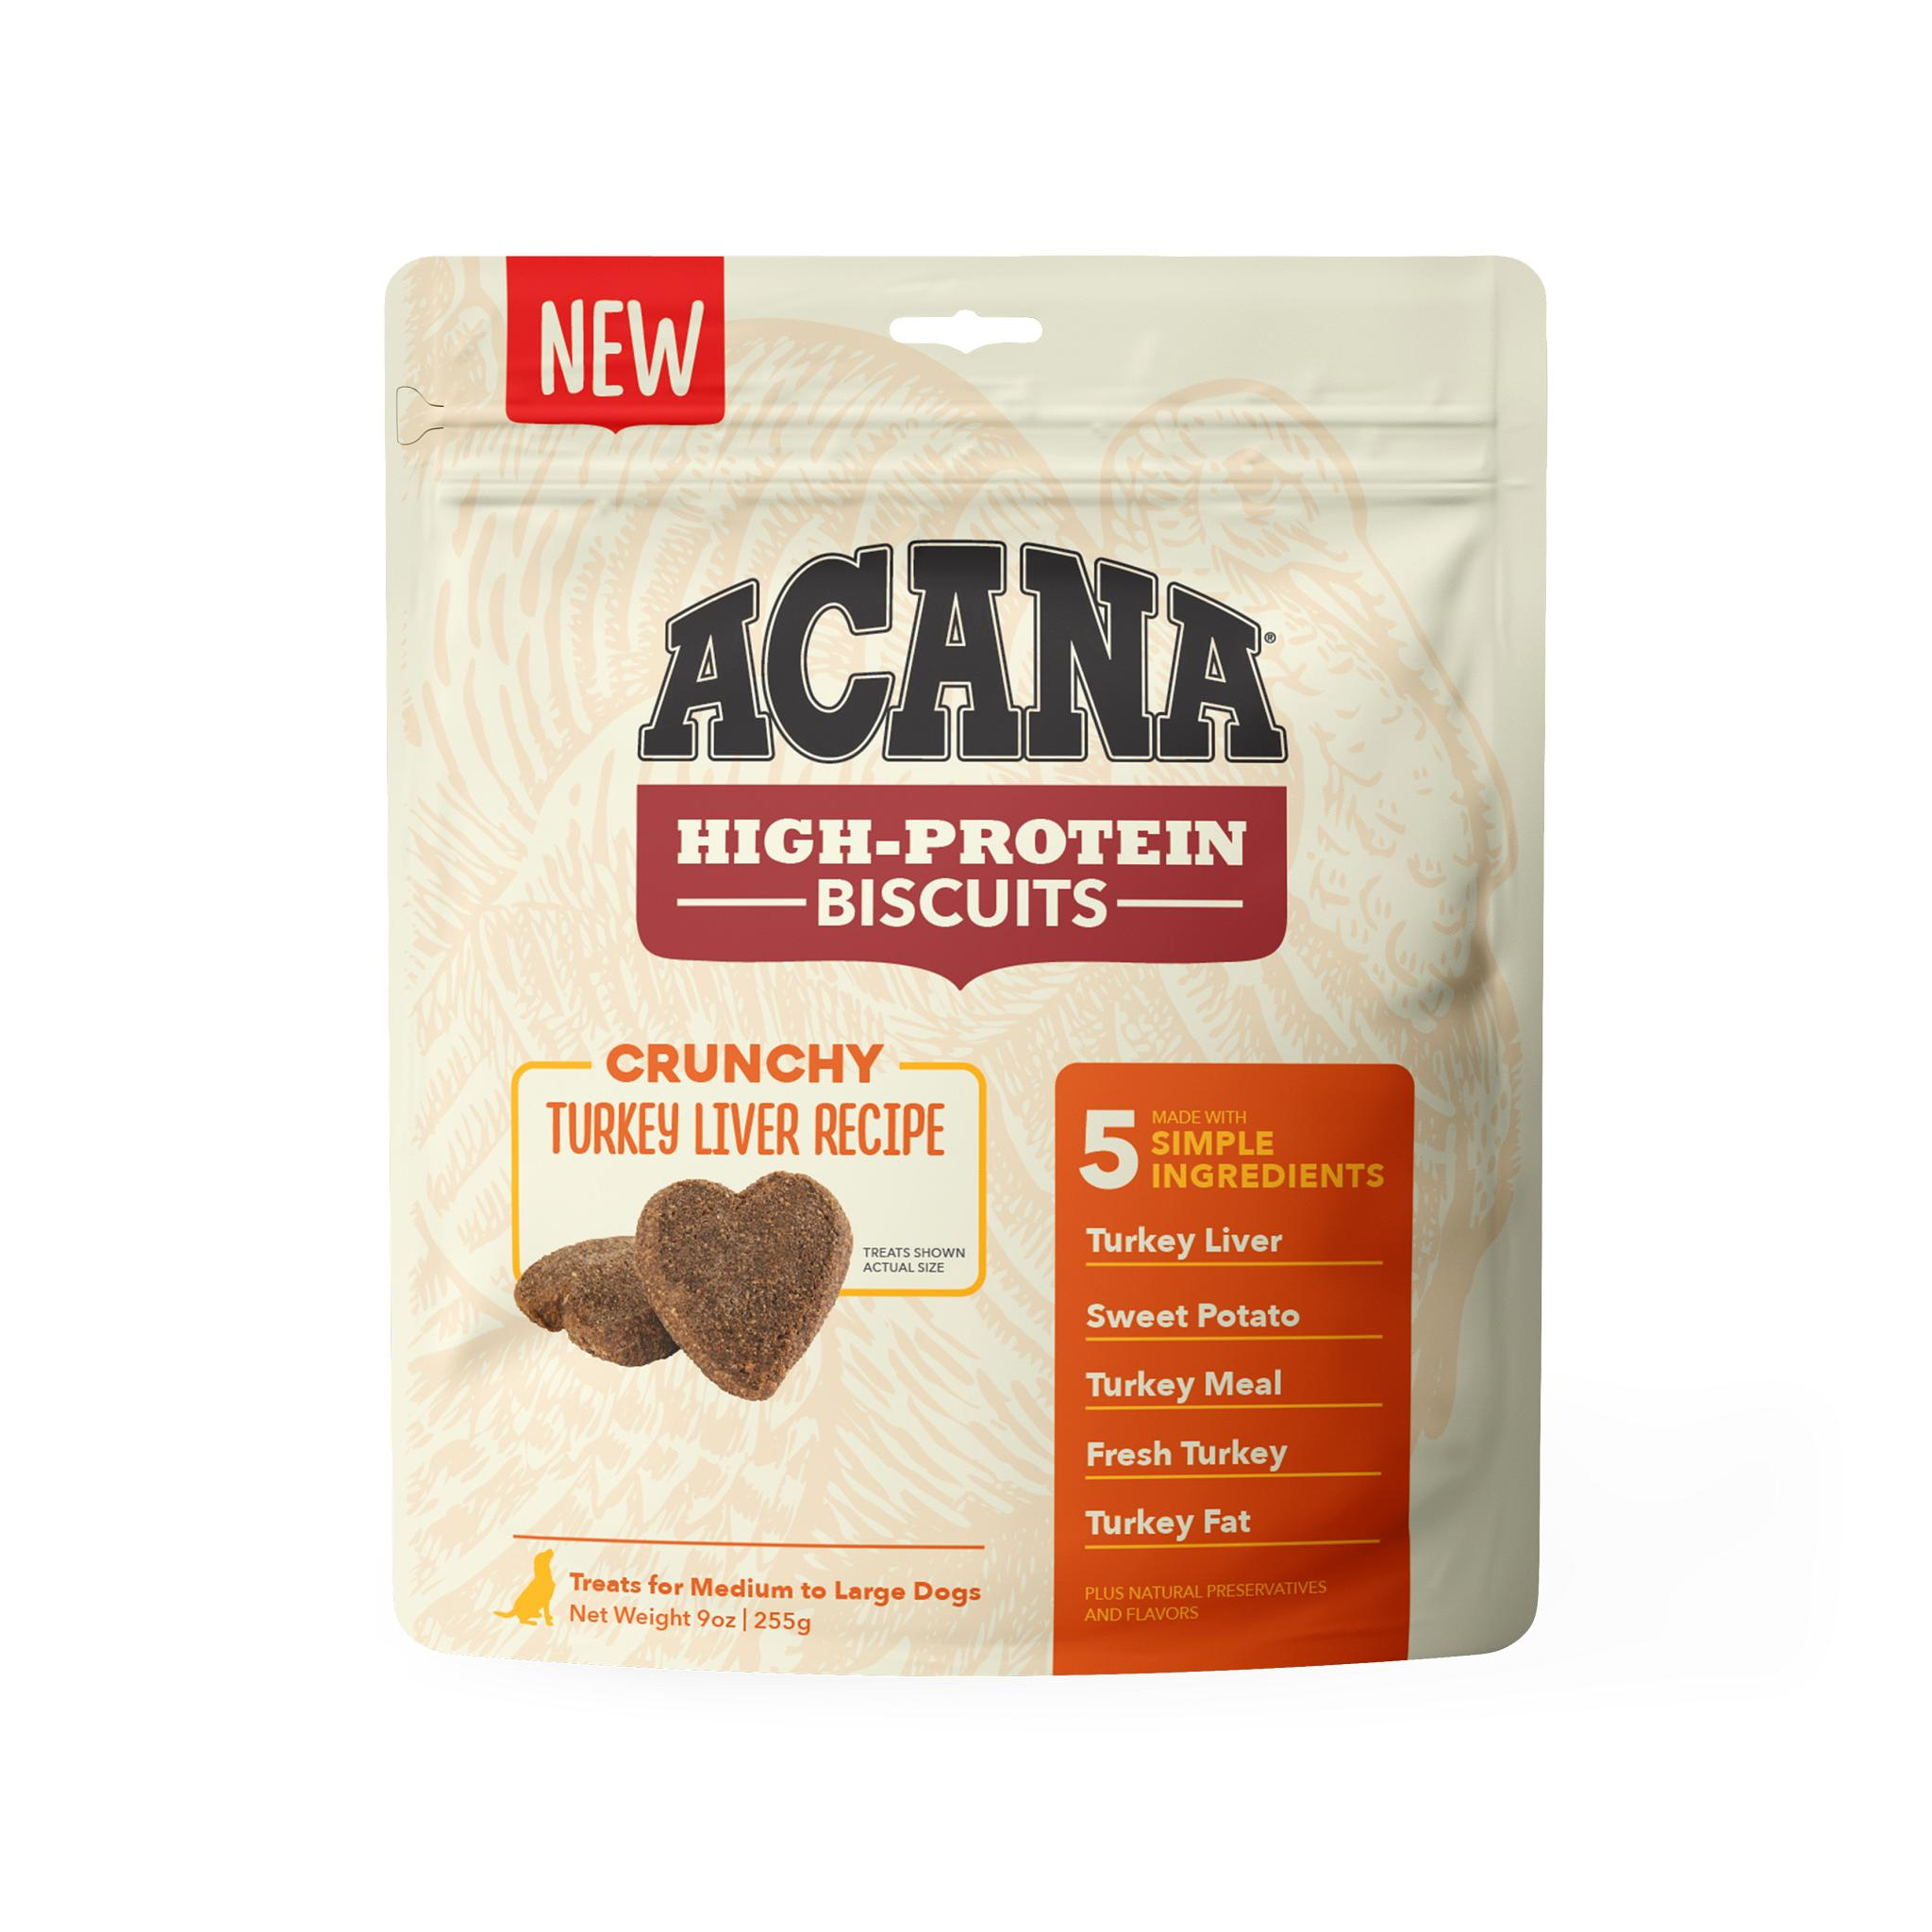 ACANA Crunchy Biscuits Turkey Liver Recipe Dog Treats, Large